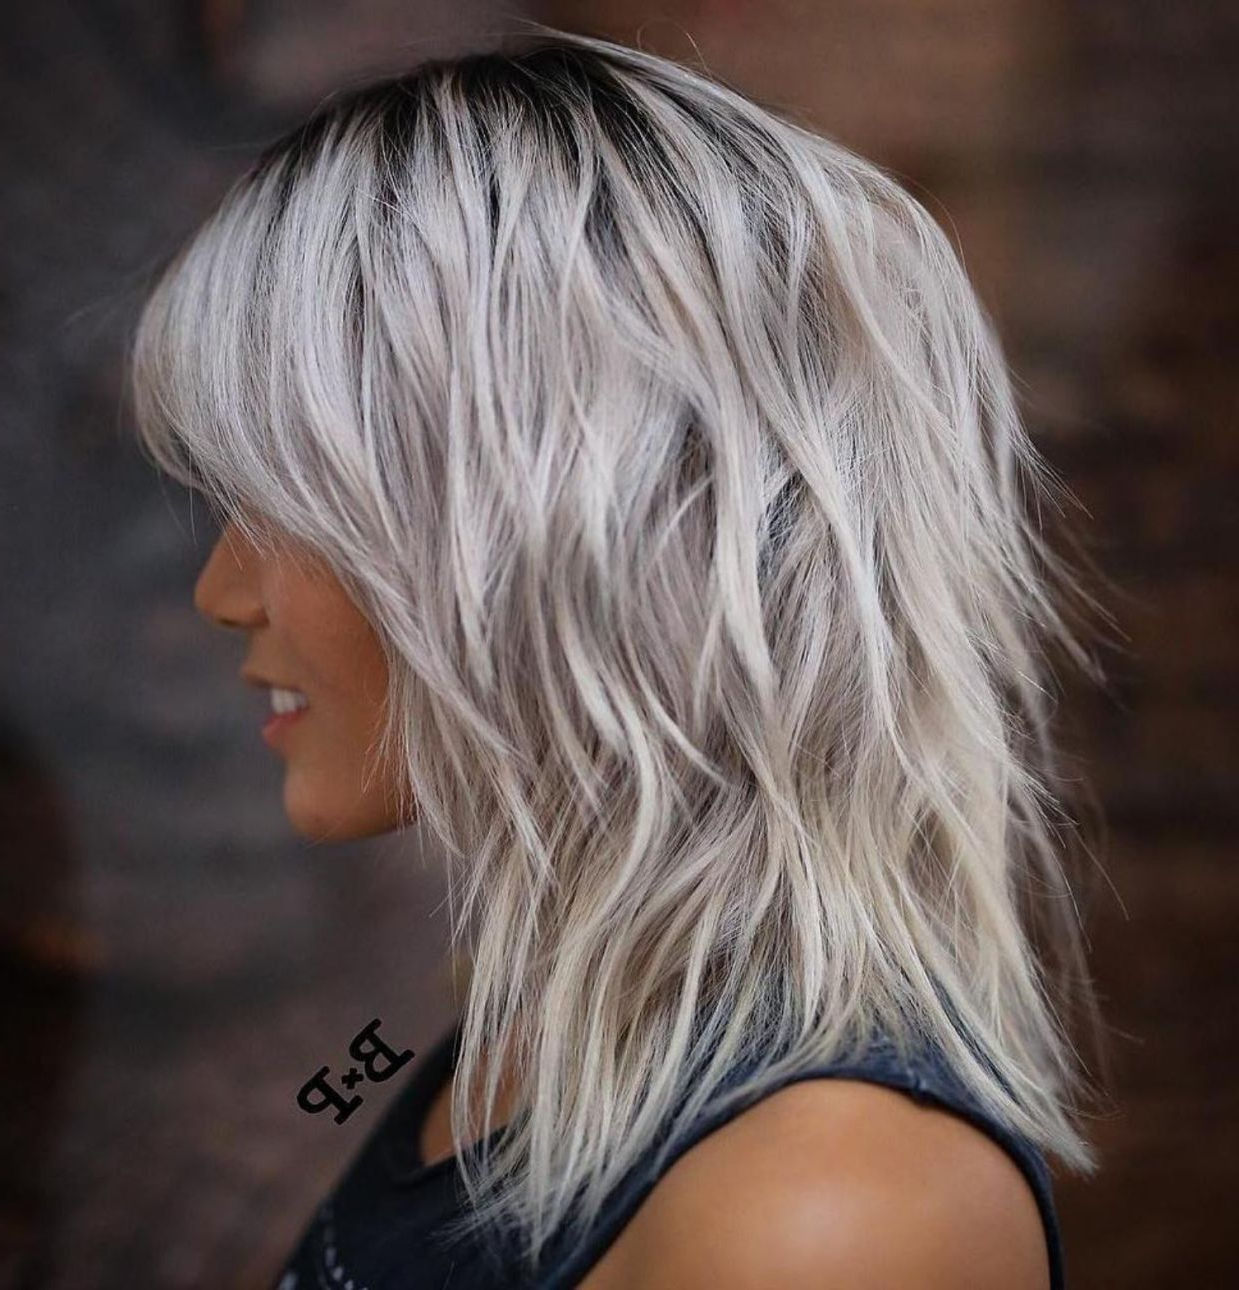 Widely Used Silver Shag Haircuts With Feathered Layers For Pin On Hair Ideas (View 3 of 20)